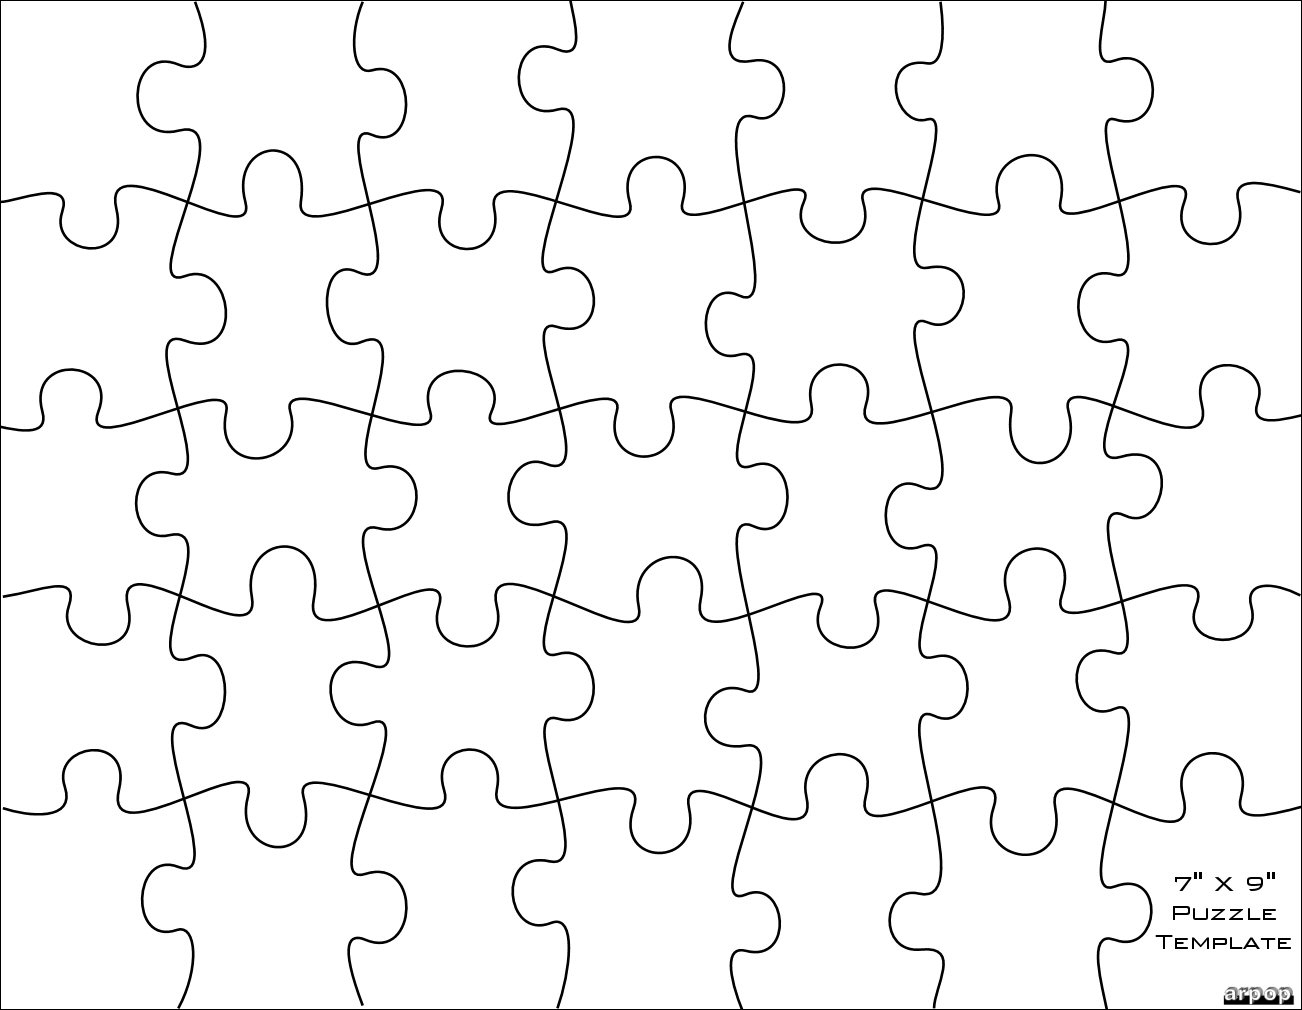 Free Puzzle Pieces Template, Download Free Clip Art, Free Clip Art - Printable Puzzle Template 8.5 X 11